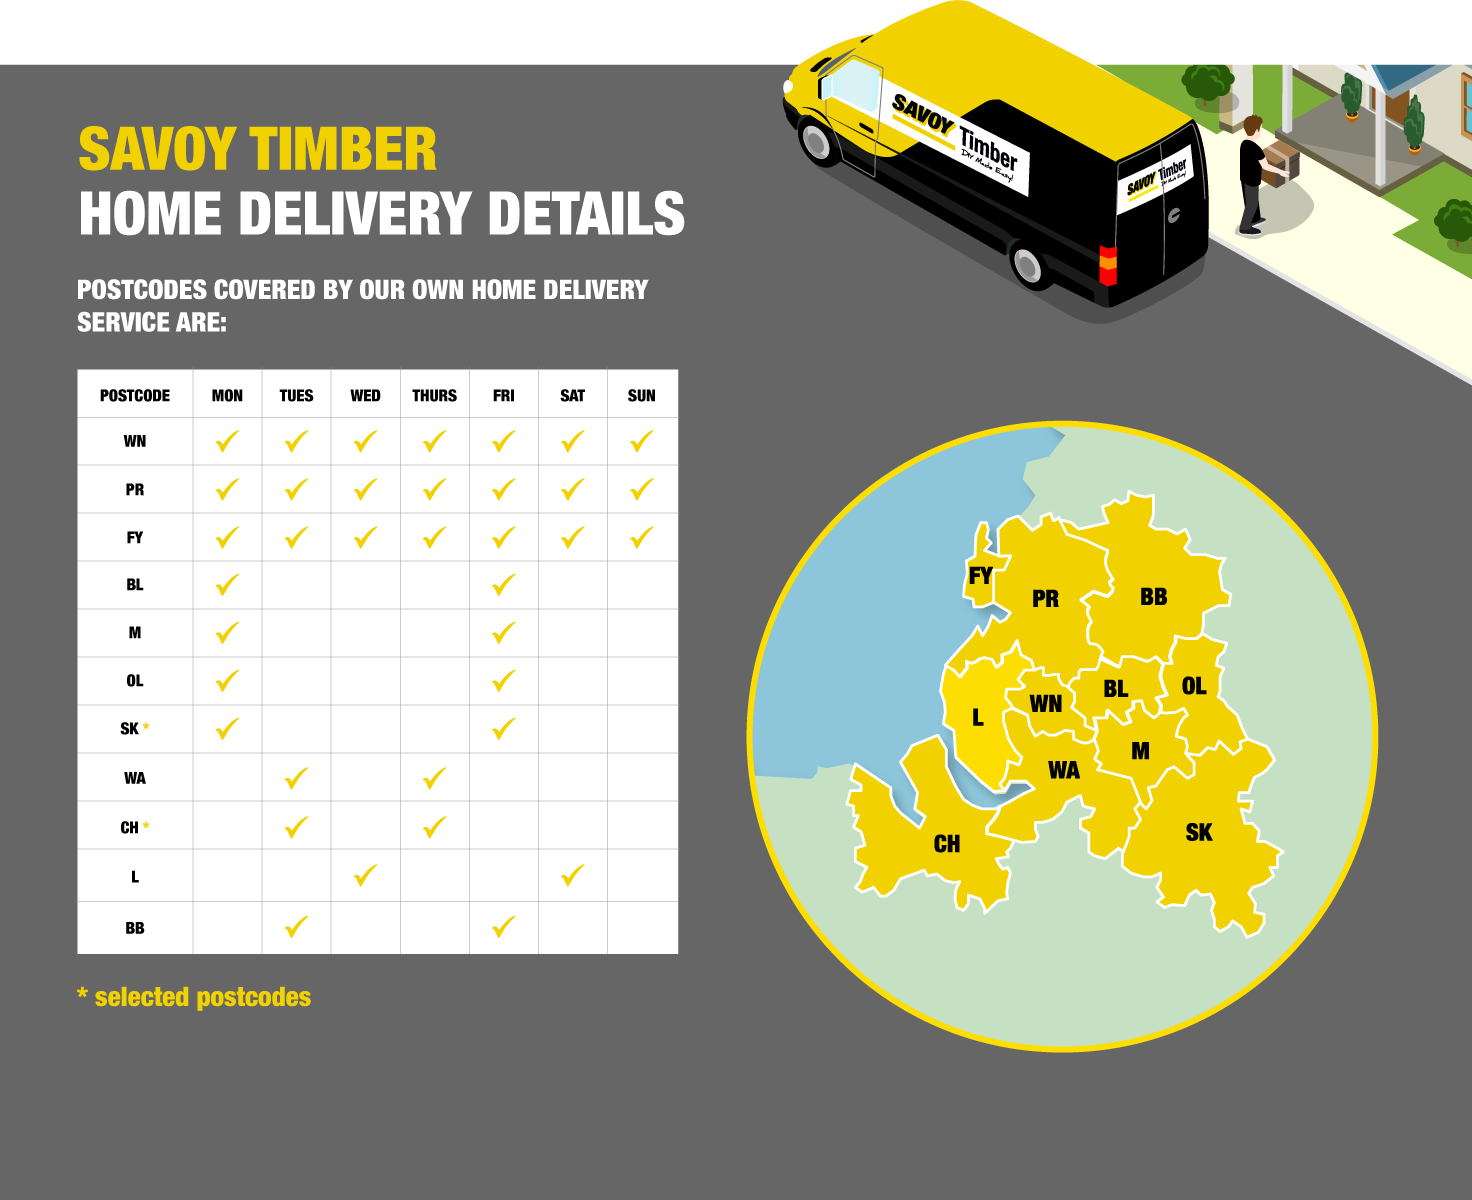 Savoy Home Delivery